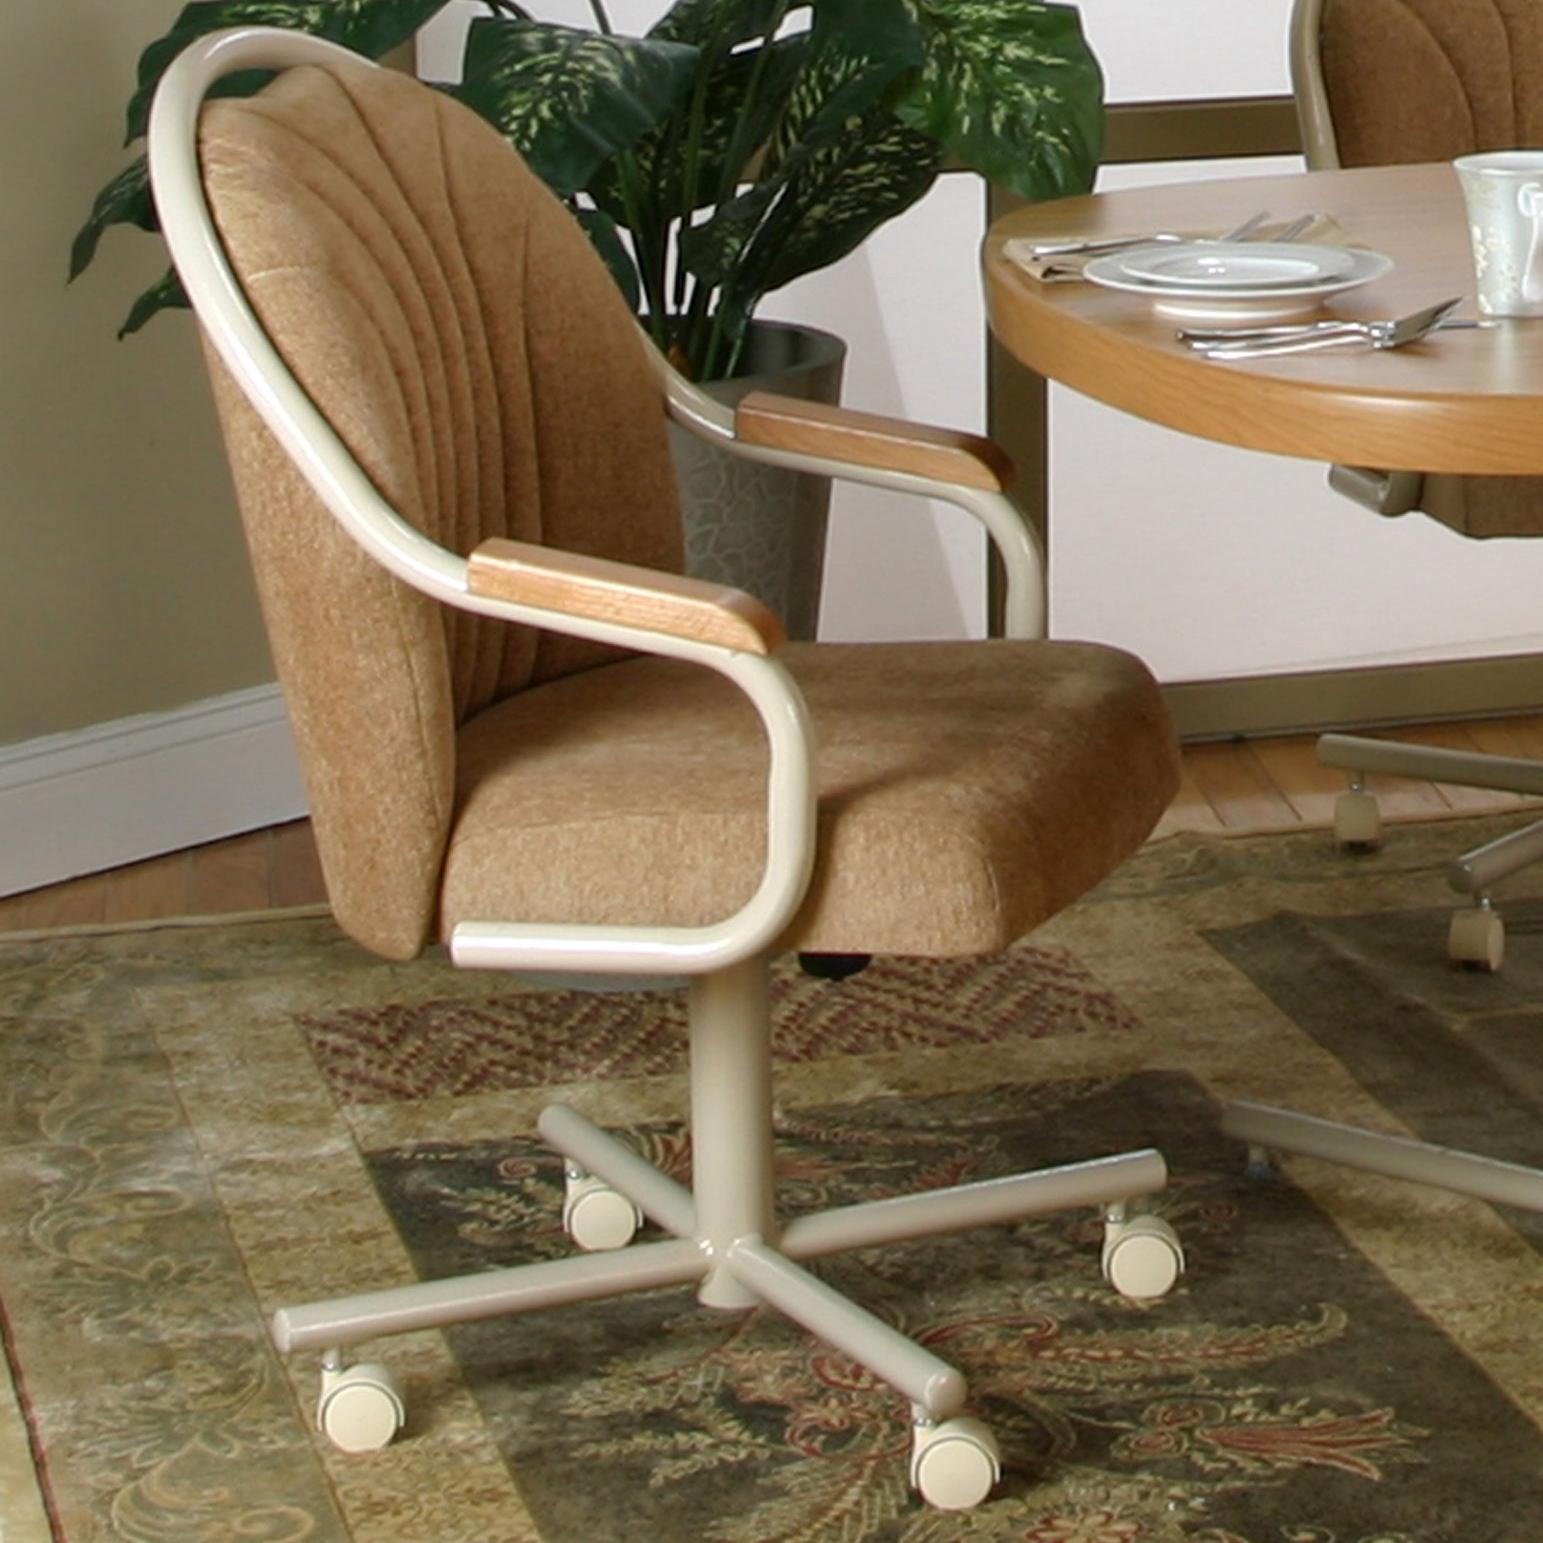 swivel chair value city adrian pearsall for sale cramco inc blair tilt chenille